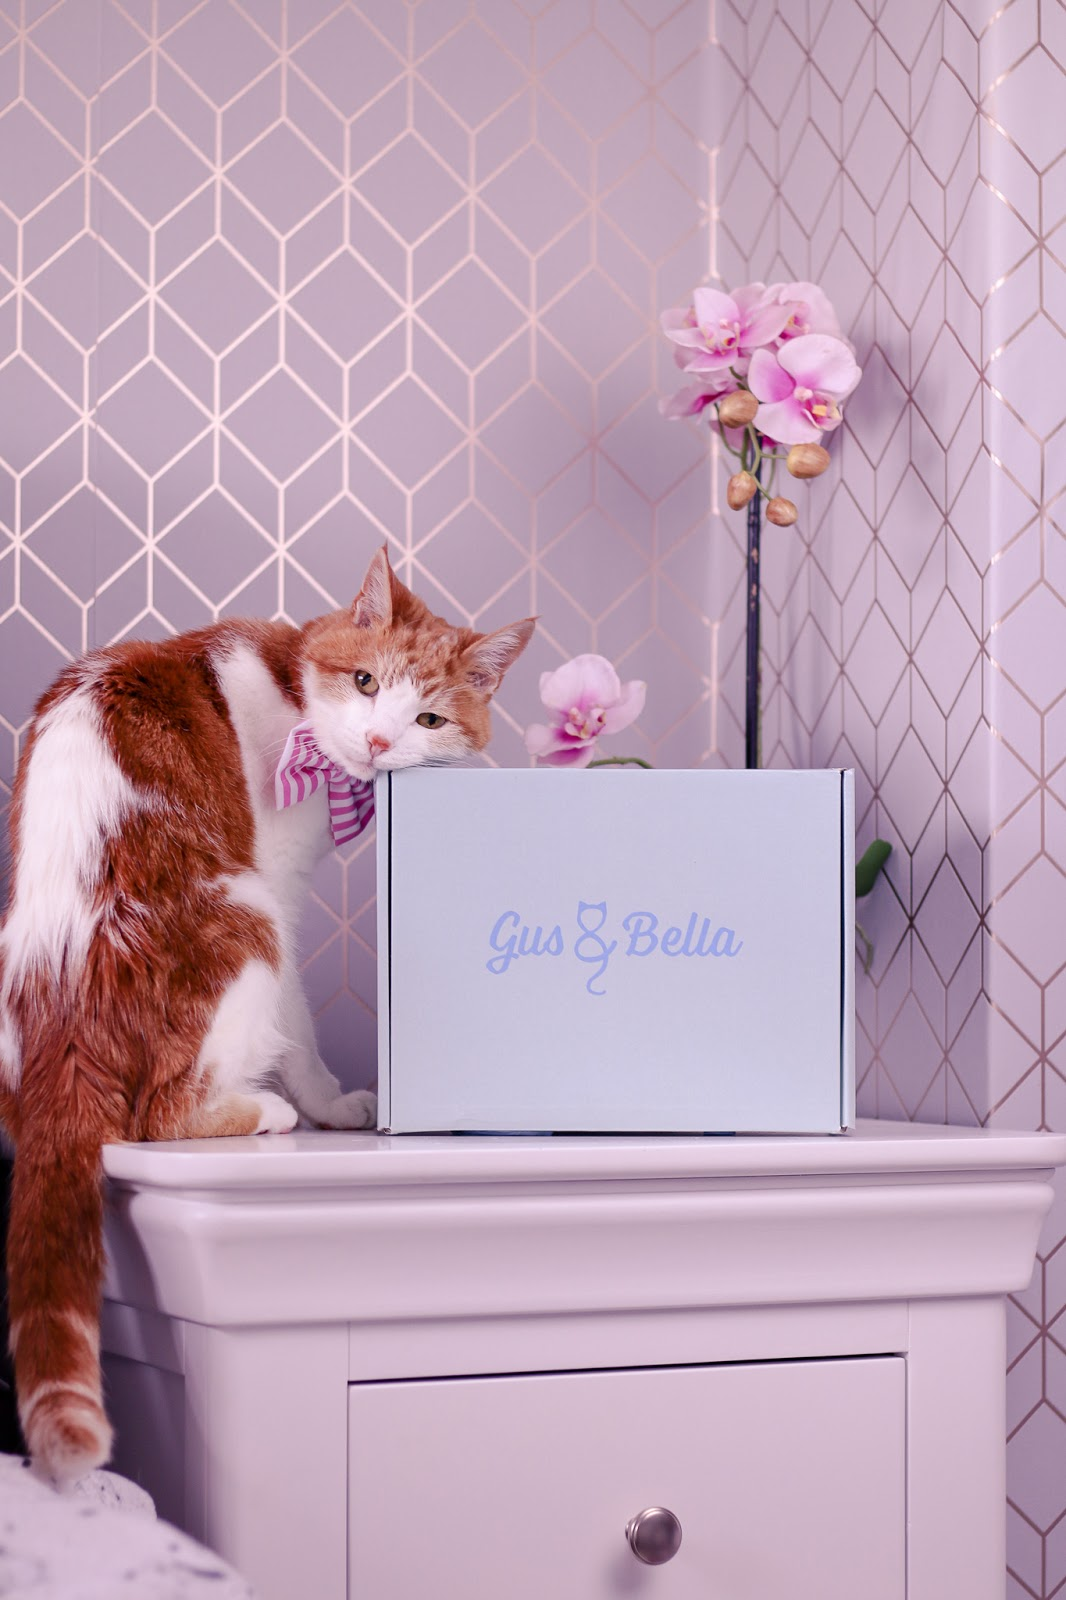 Photo of Teddy, a ginger and white cat on a white bedside table rubbing against the blue gus & bella box